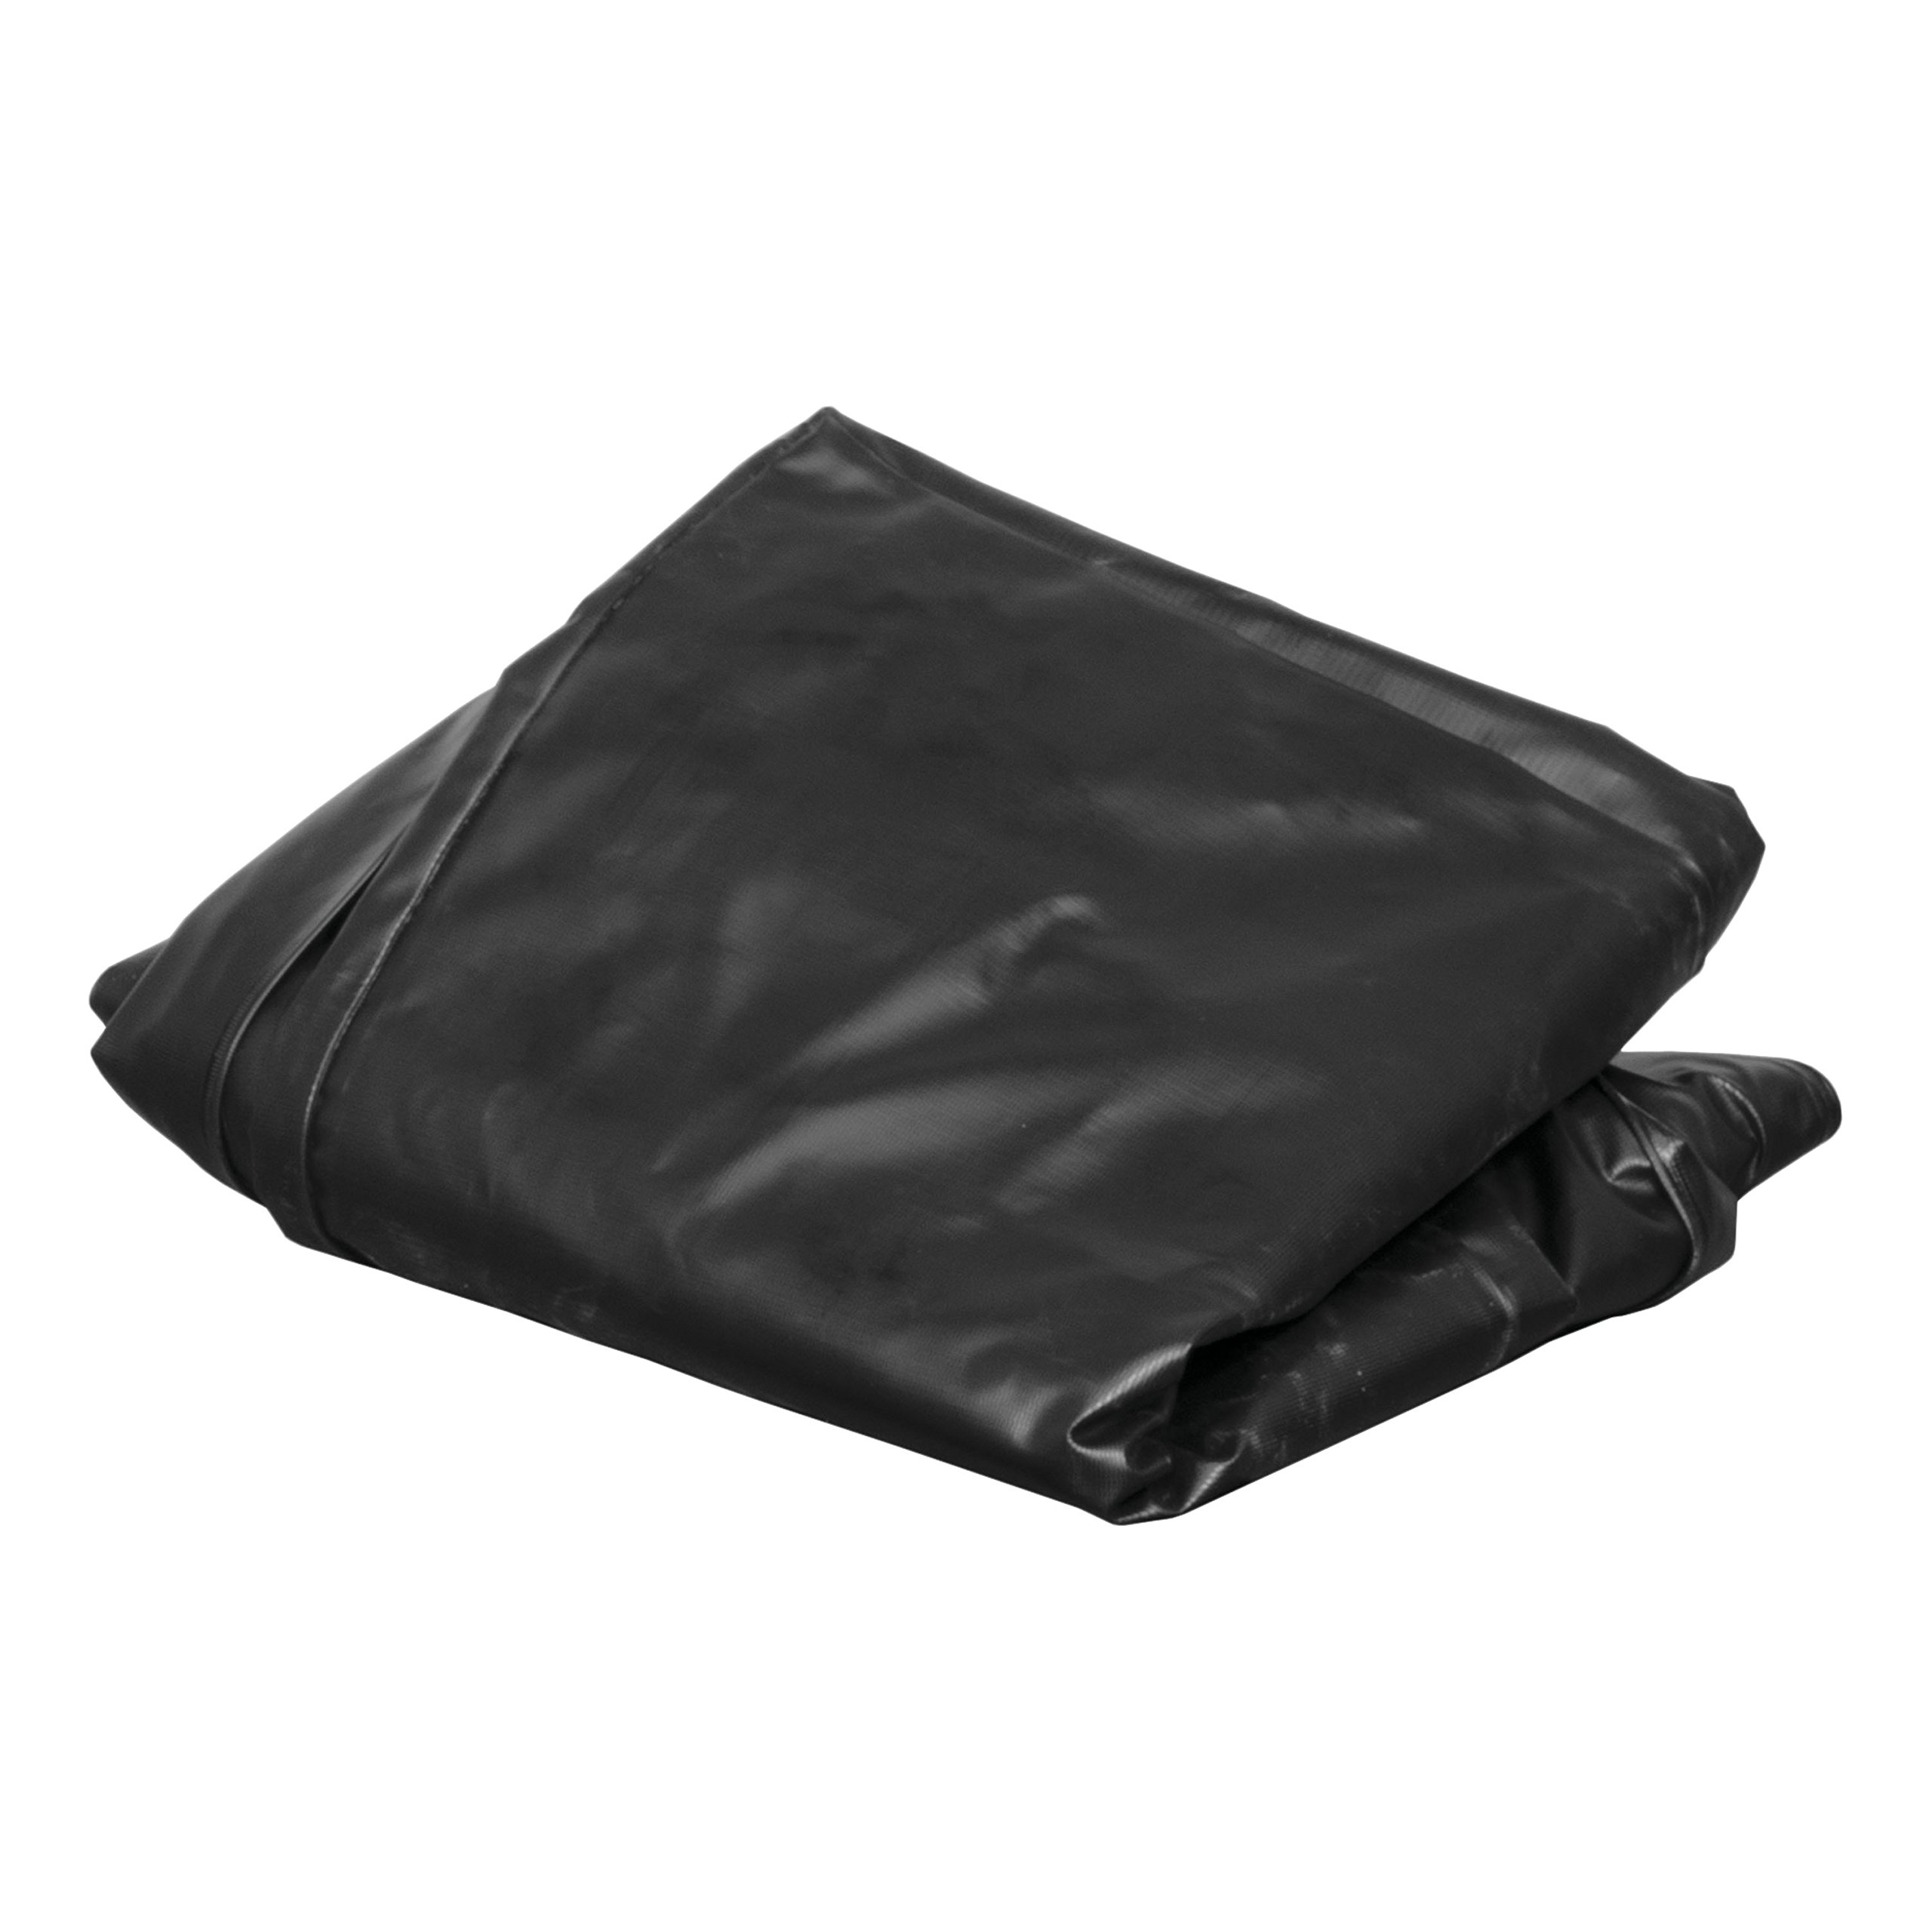 CURT 18221 Extended Roof Rack Cargo Bag by Curt Manufacturing (Image #2)